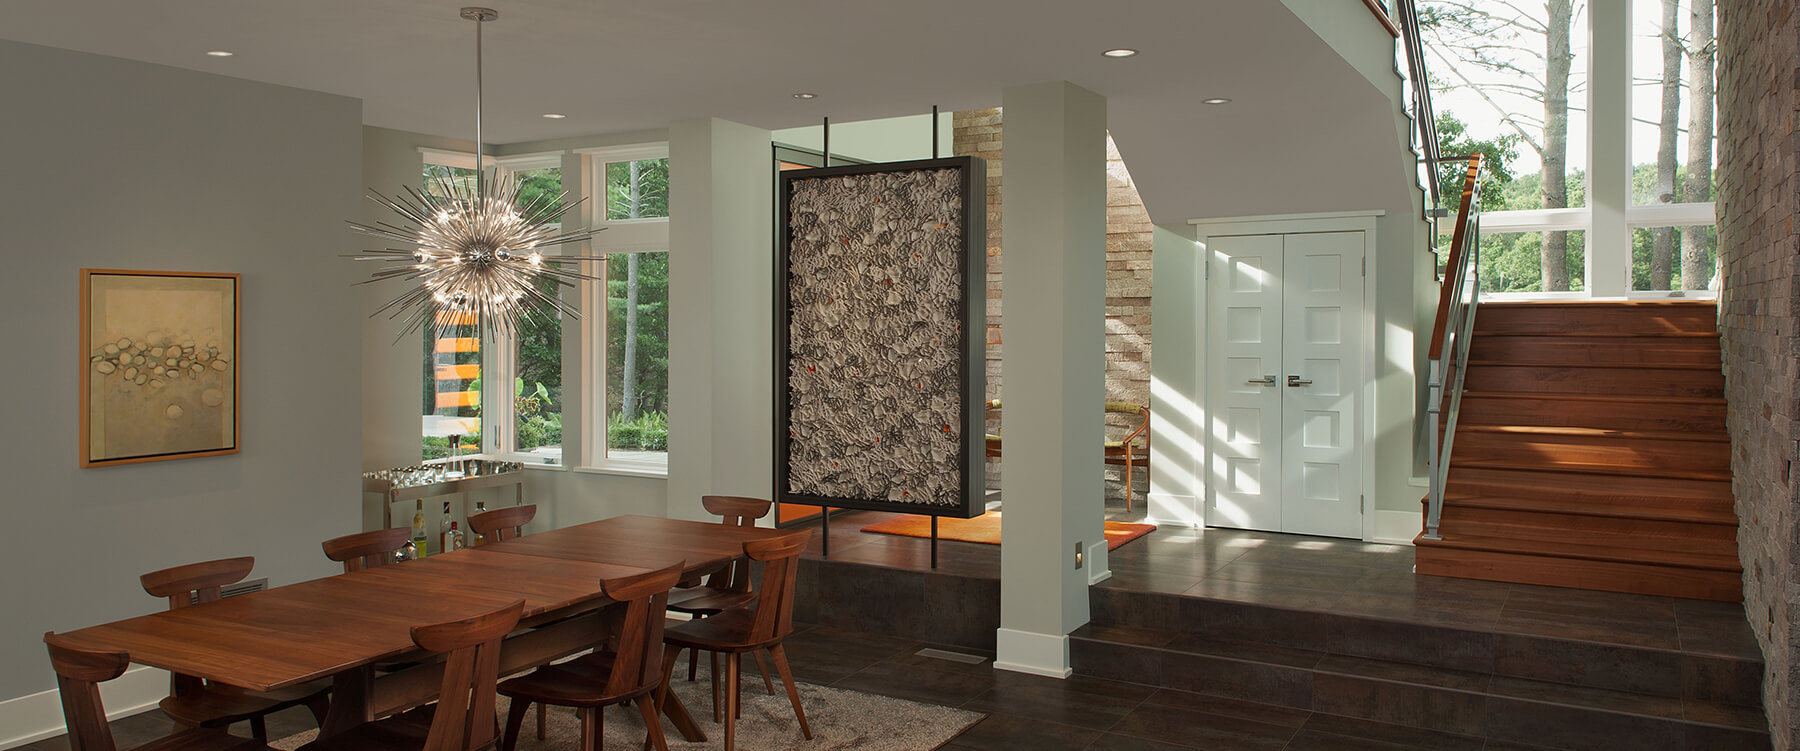 dining room at Contemporary Michigan Home